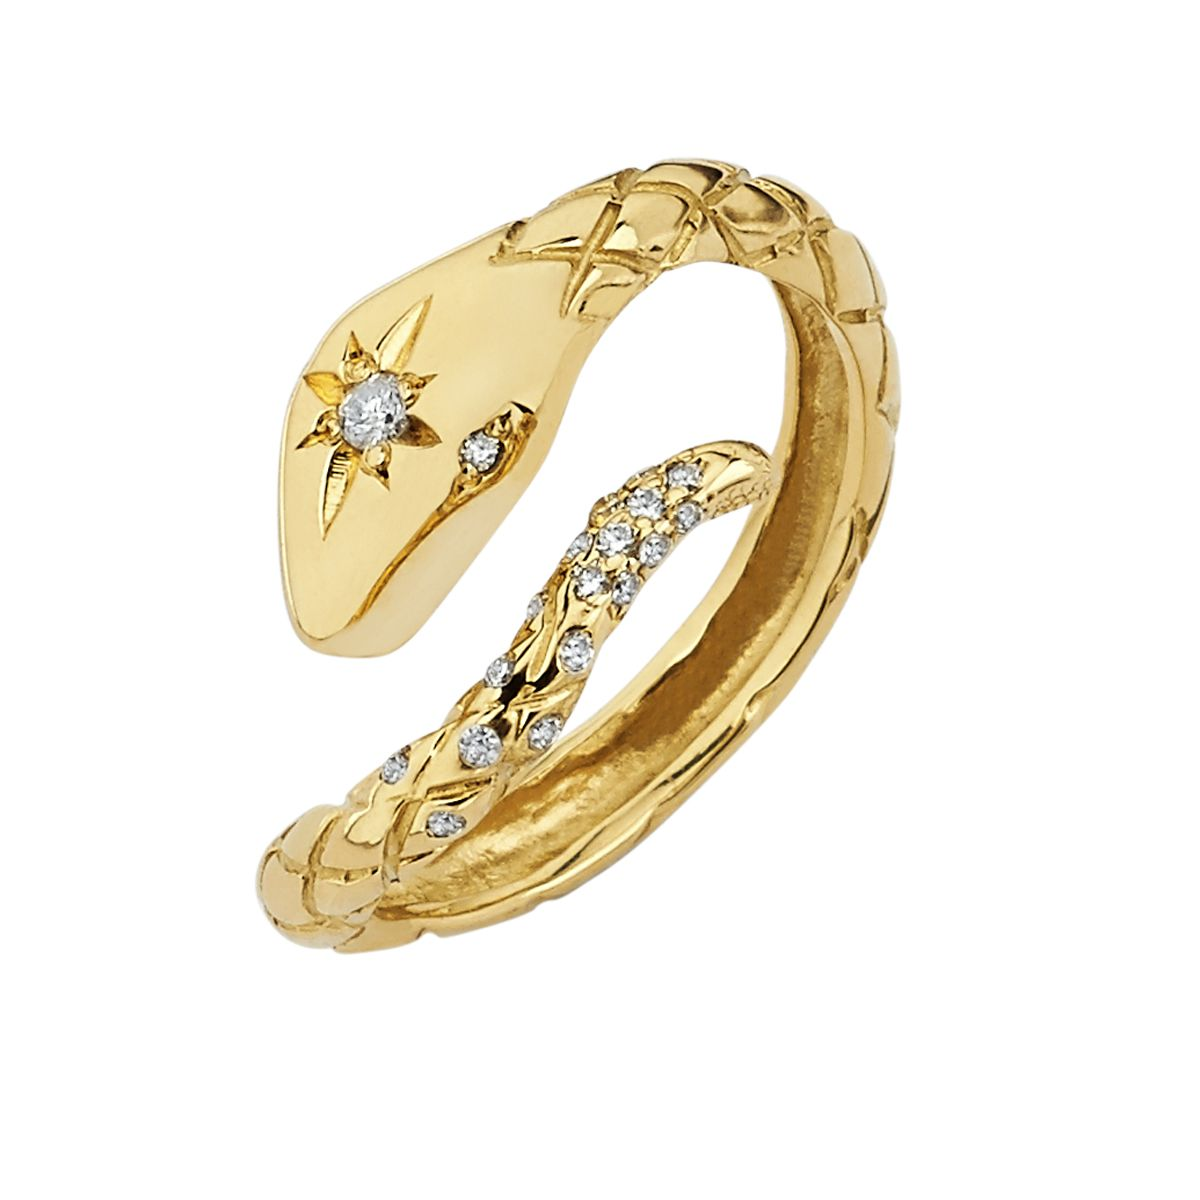 "<p>Logan Hollowell Gold and Diamond Ring, $1,320; <a href=""http://loganhollowell.com/"">loganhollowell.com</a></p>"